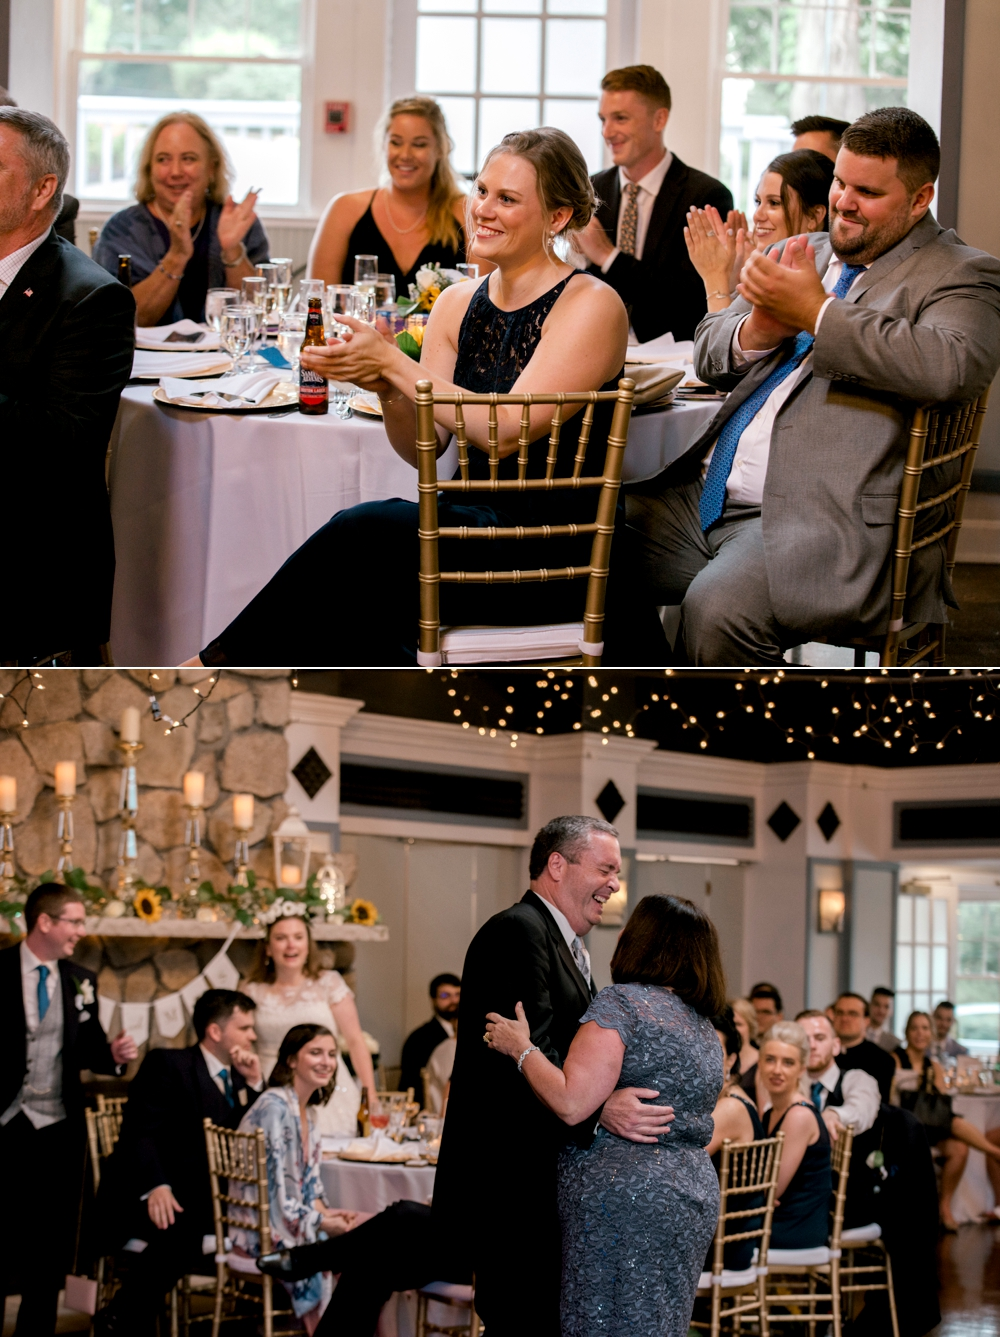 SomerbyJonesPhotography__RiverClub_RiverClubWedding_SouthShoreWedding_0045.jpg